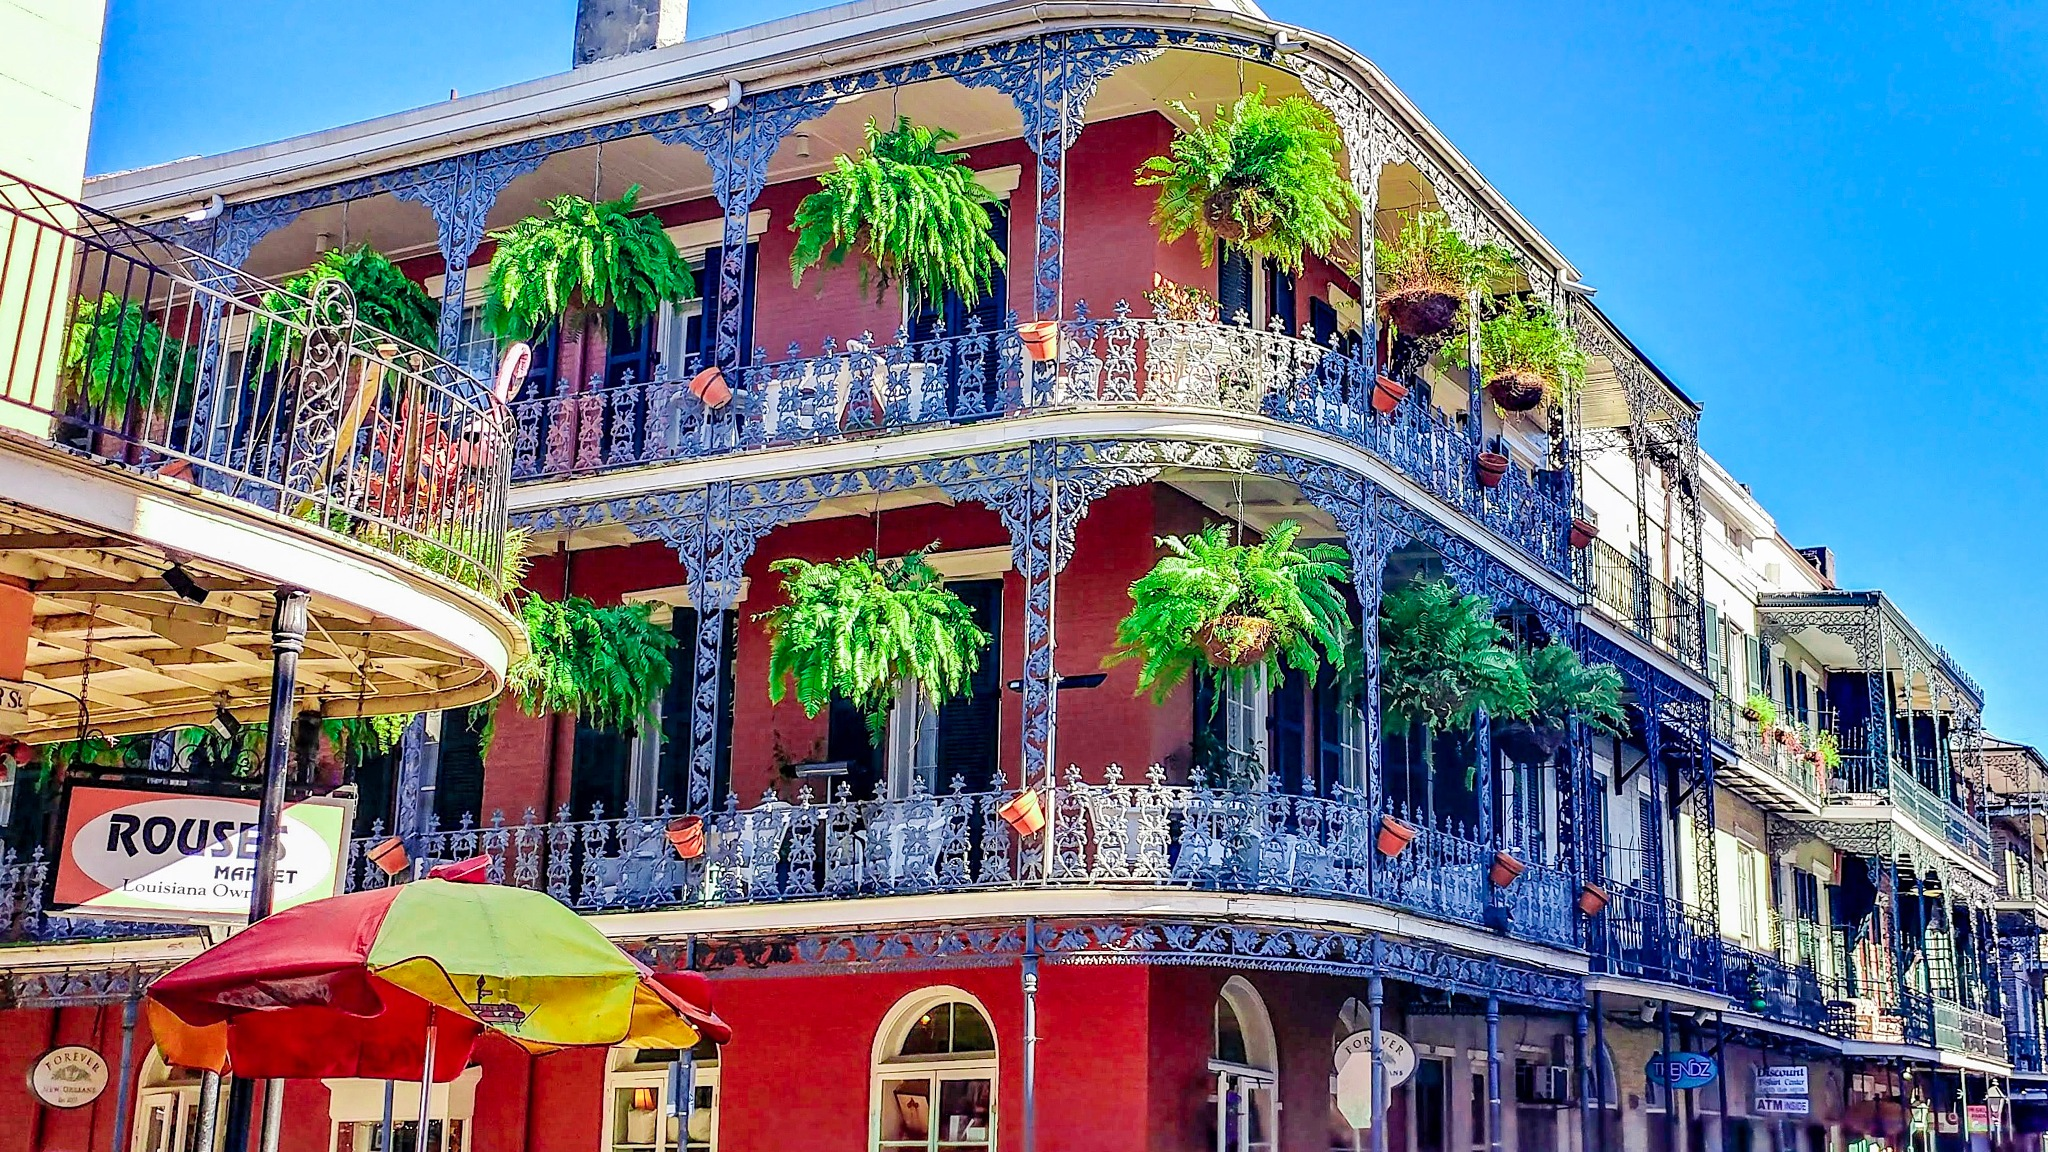 French Quarter by Marlene Whicker Pemberton